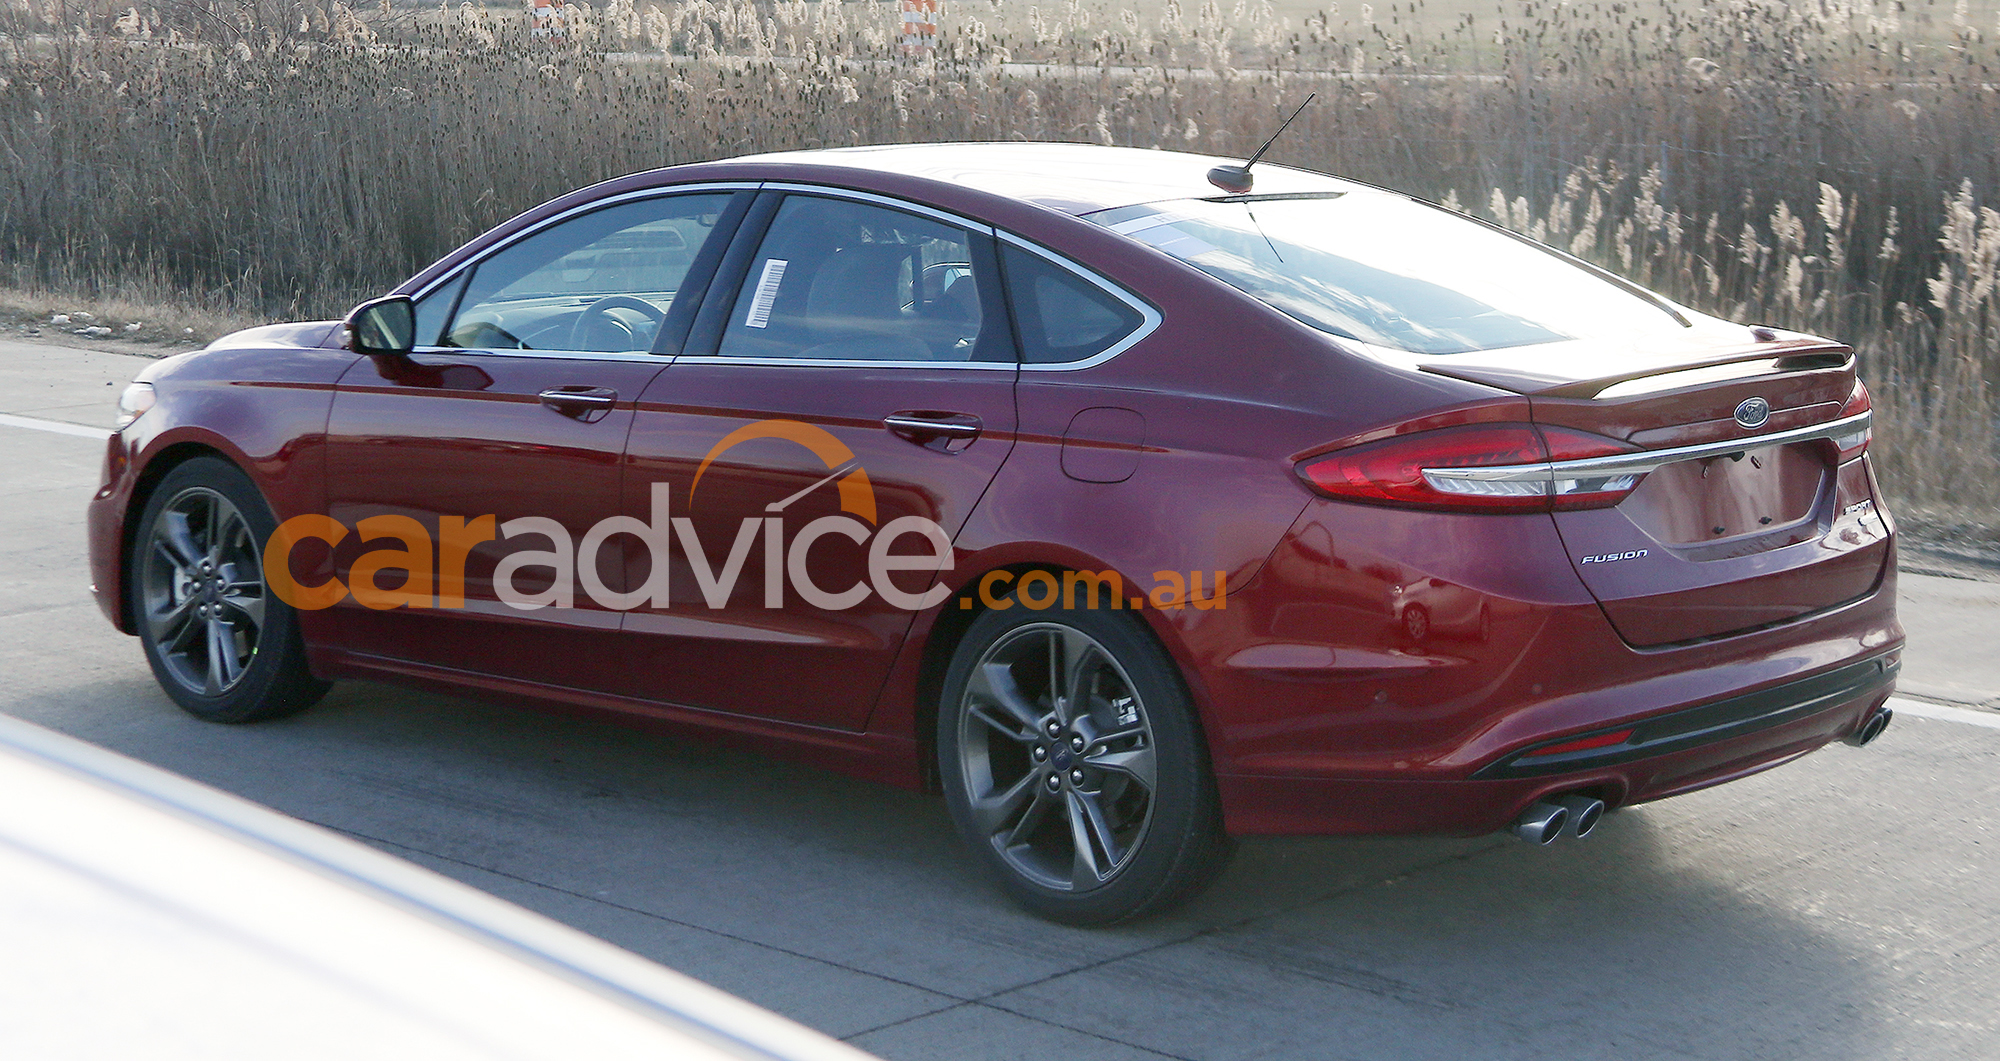 2017 ford mondeo sport spied without disguise turbo v6 expected for detroit show photos 1 of 5